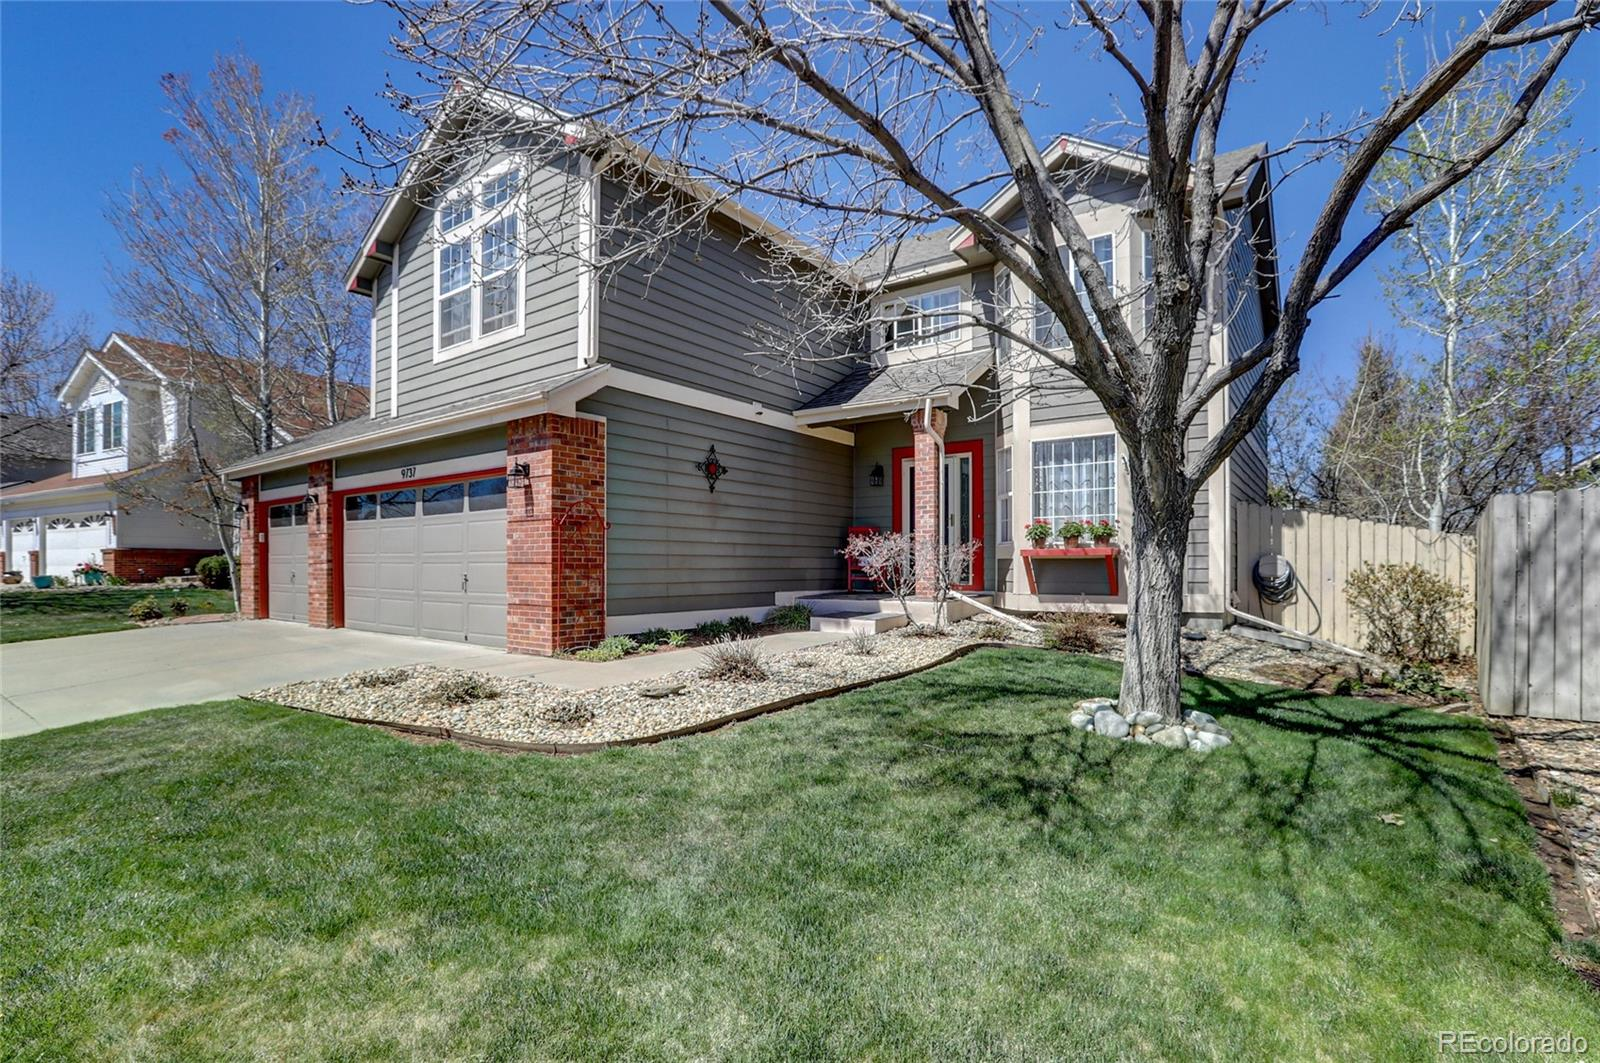 9737 Newland Court, Westminster, CO 80021 - Westminster, CO real estate listing